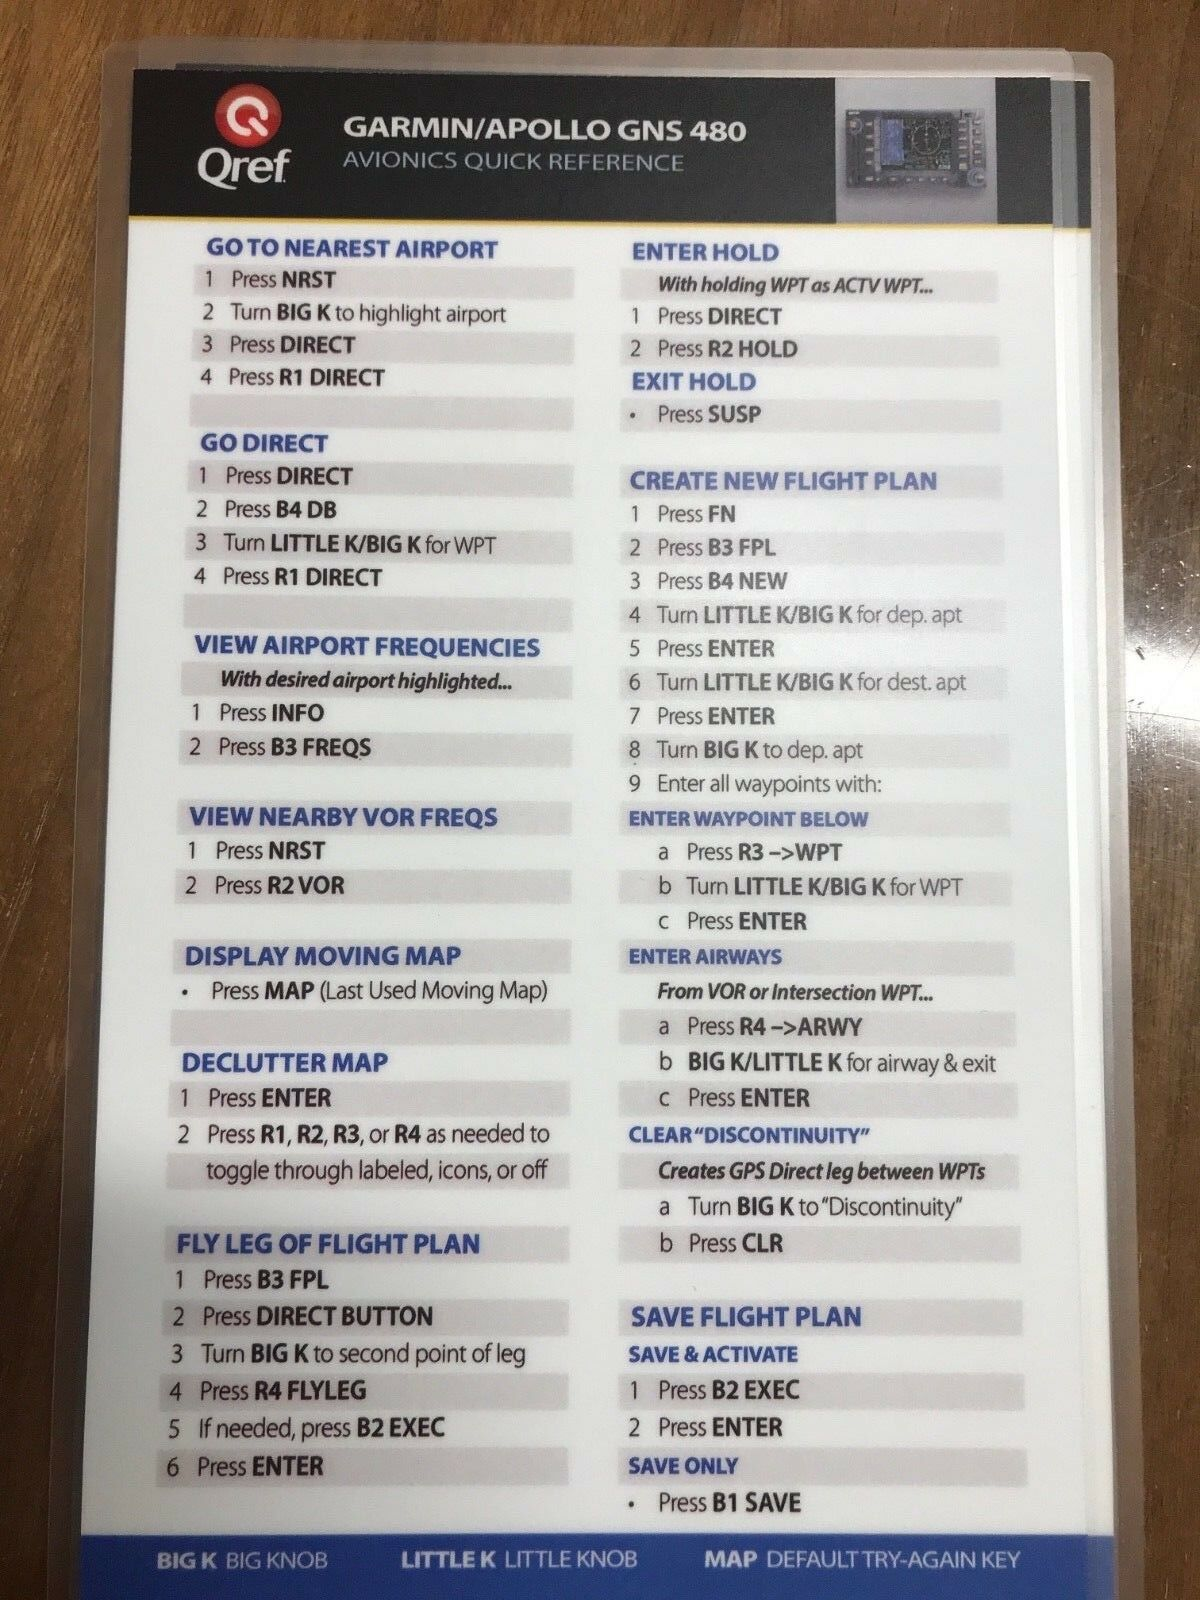 GARMIN APOLLO GNS  480 QUICK REFERENCE CHECKLIST CARD by Qref p/n GA-480-2